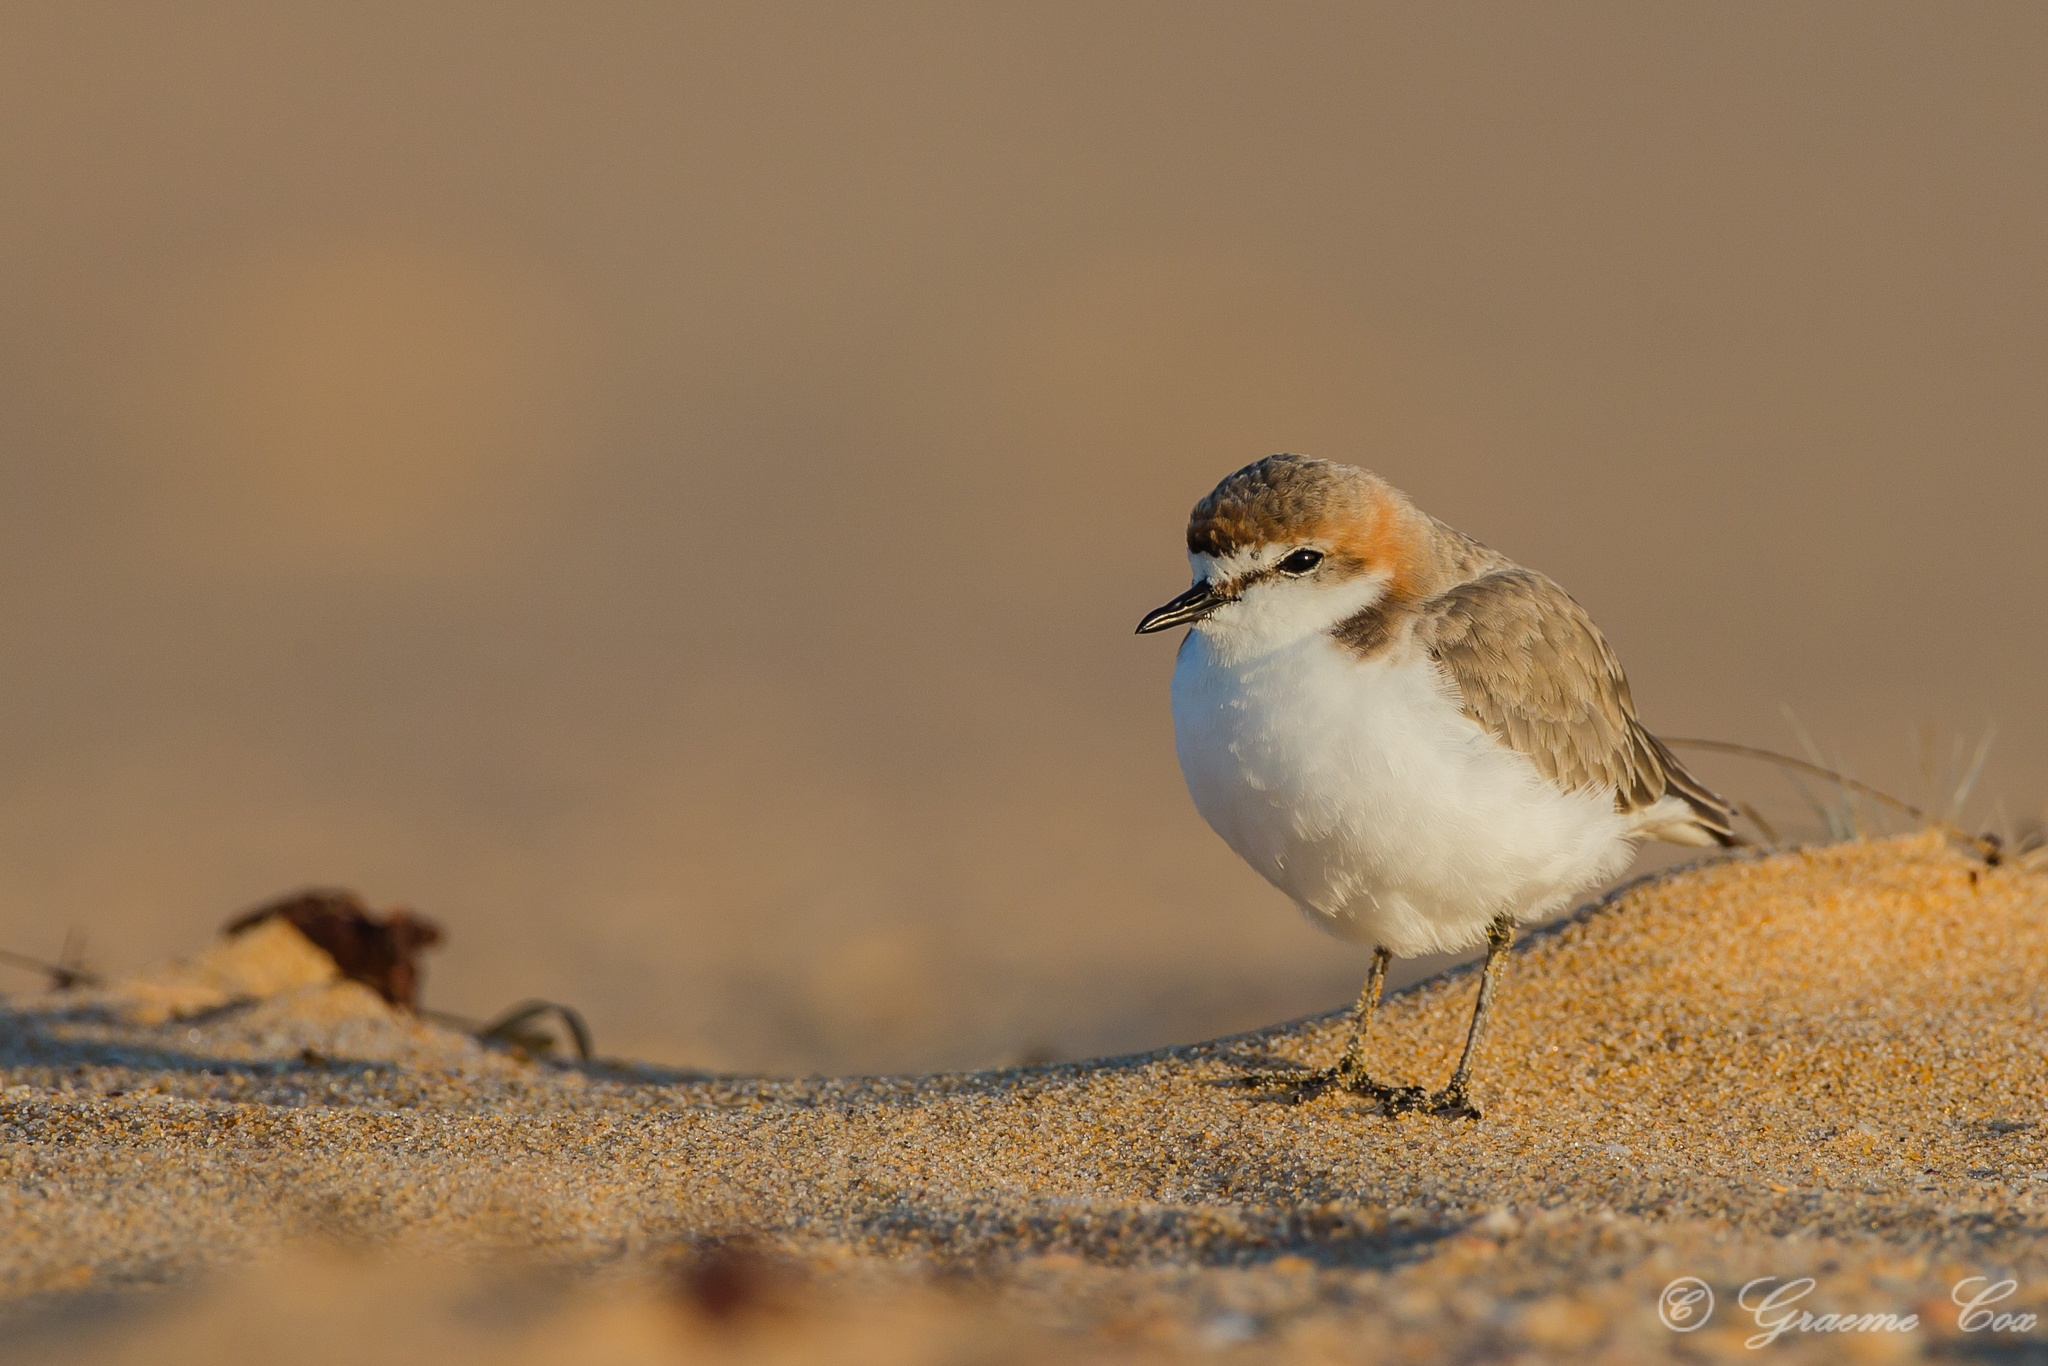 The red-capped plover (Charadrius ruficapillus) by Graeme Cox